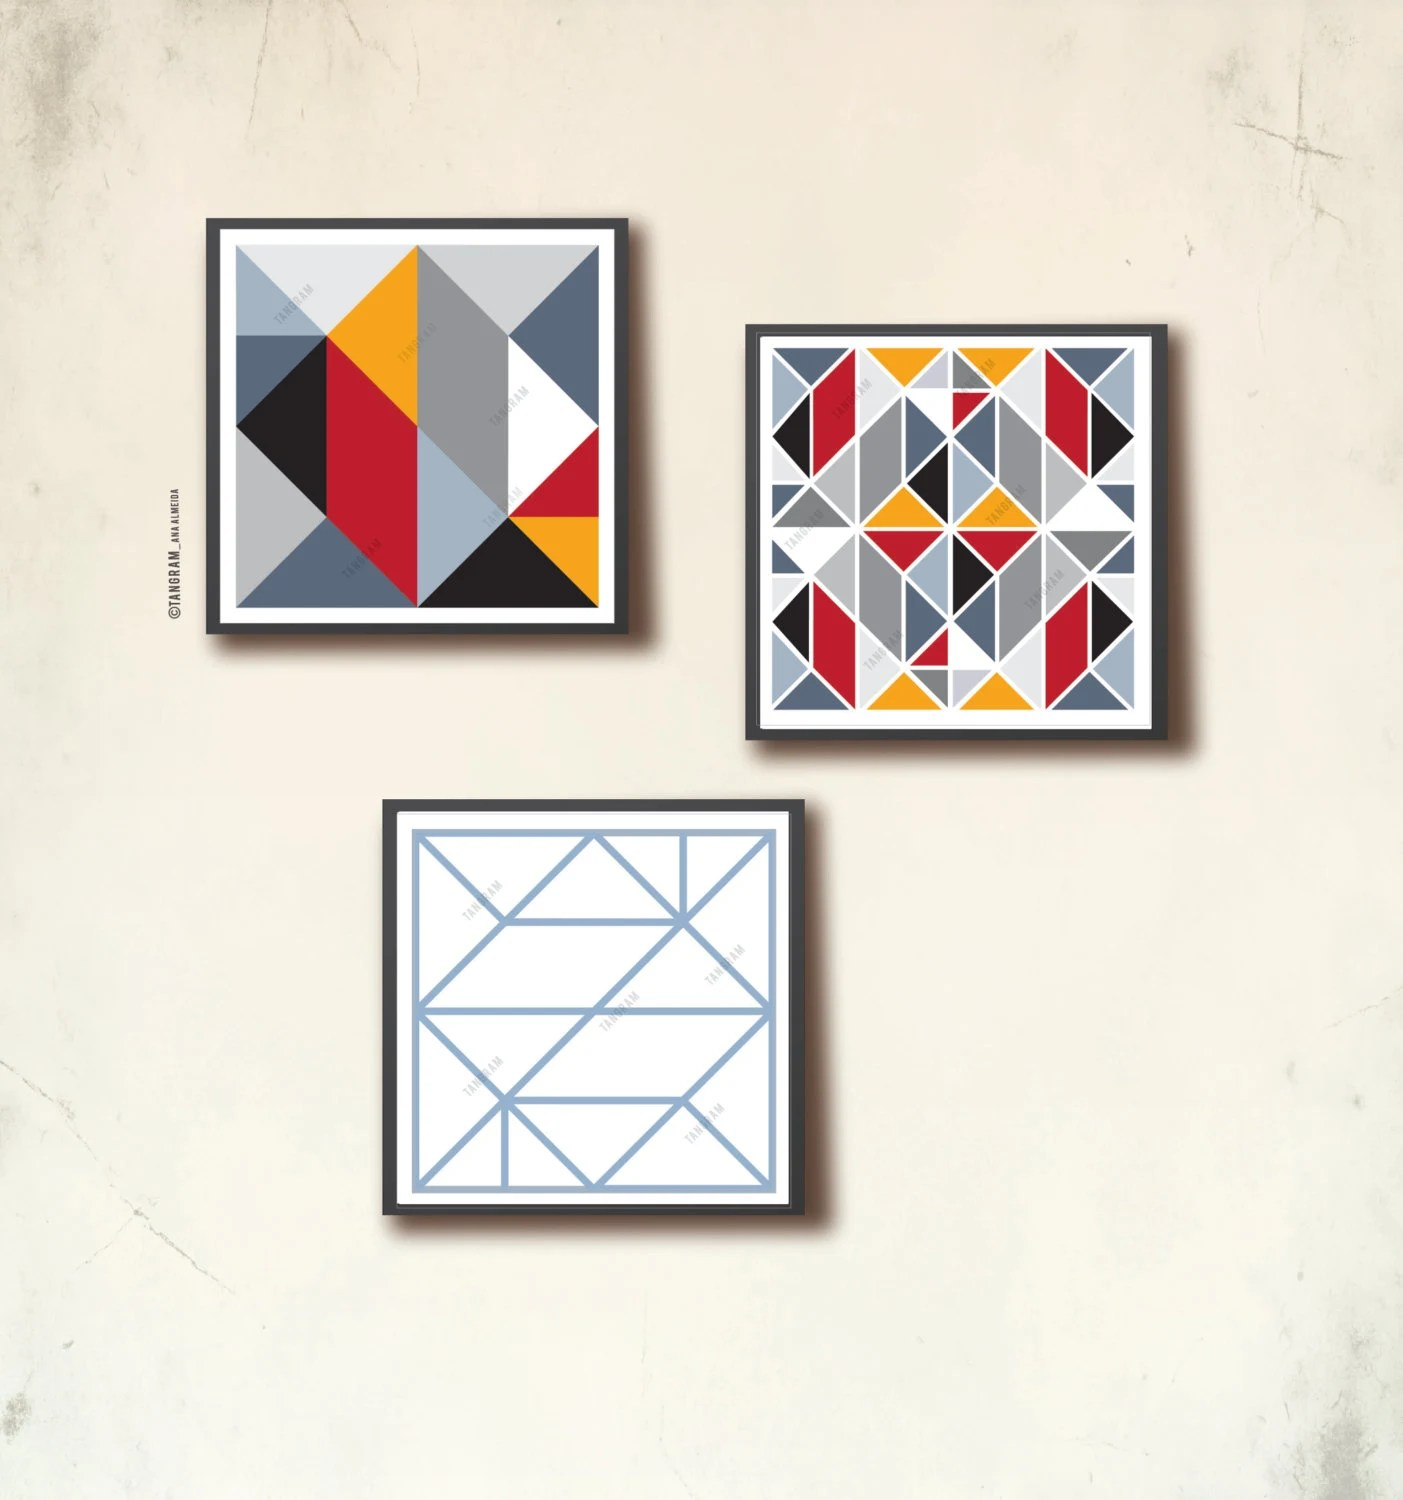 Affiches Scandinaves Geometric Art Trio Three Square Posters Scandinavian Posters 12 X 12